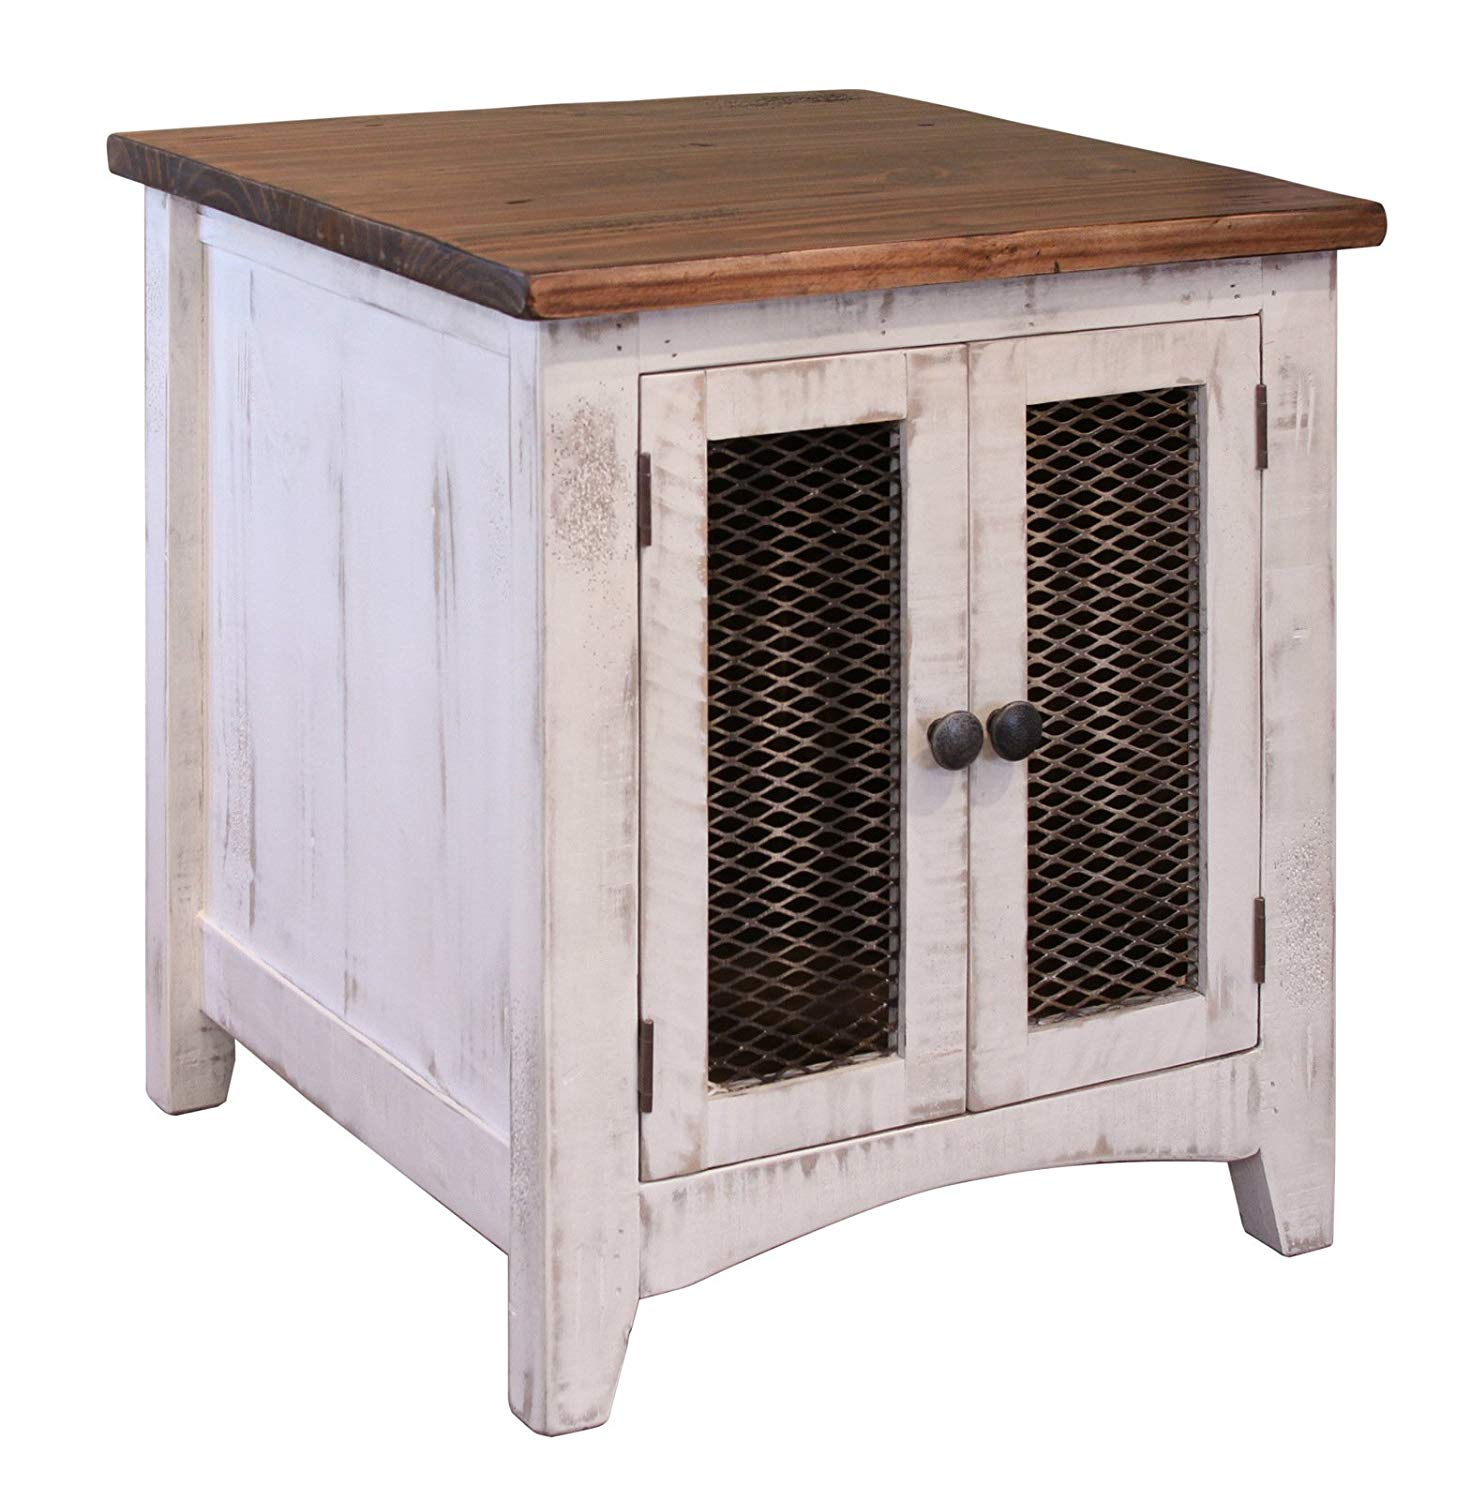 anton quality solid wood distressed white end table with accent doors side has storage behind mesh and arrives fully assembled kitchen antique oak rustic hobby lobby furniture